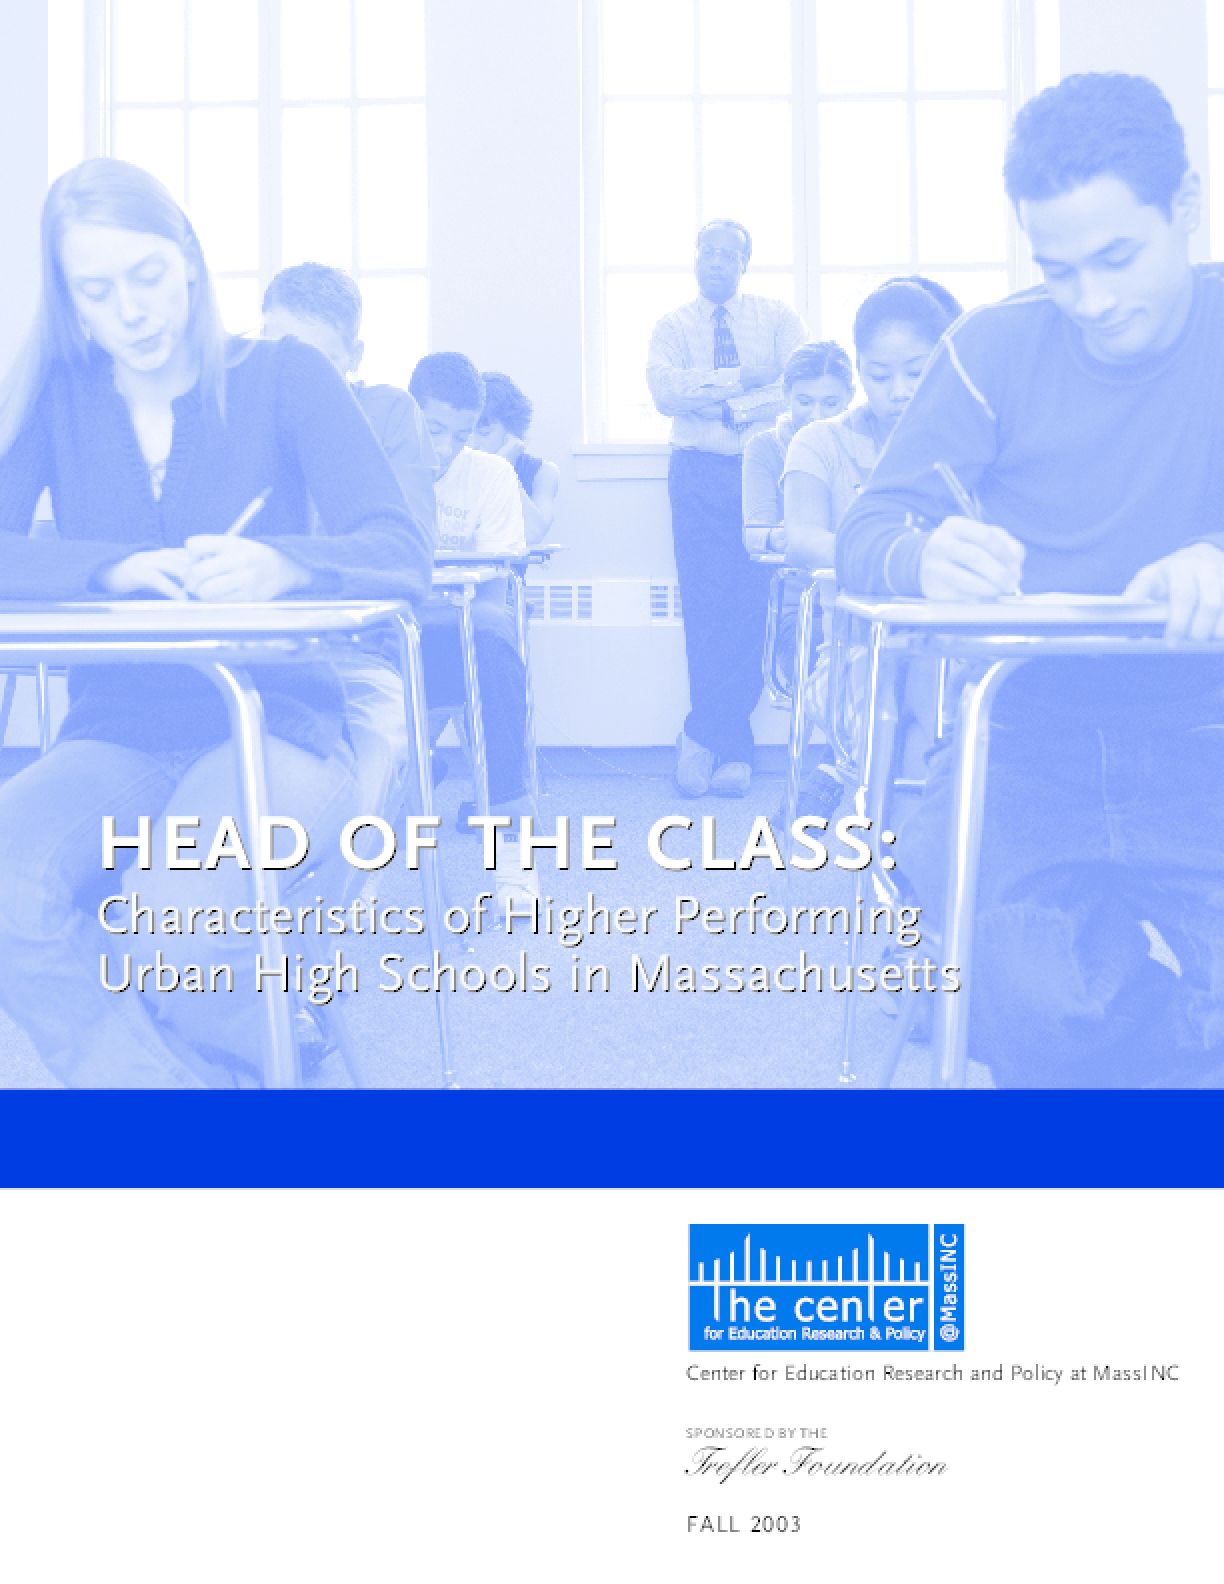 Head of the Class: Characteristics of Higher Performing Urban High Schools in Massachusetts